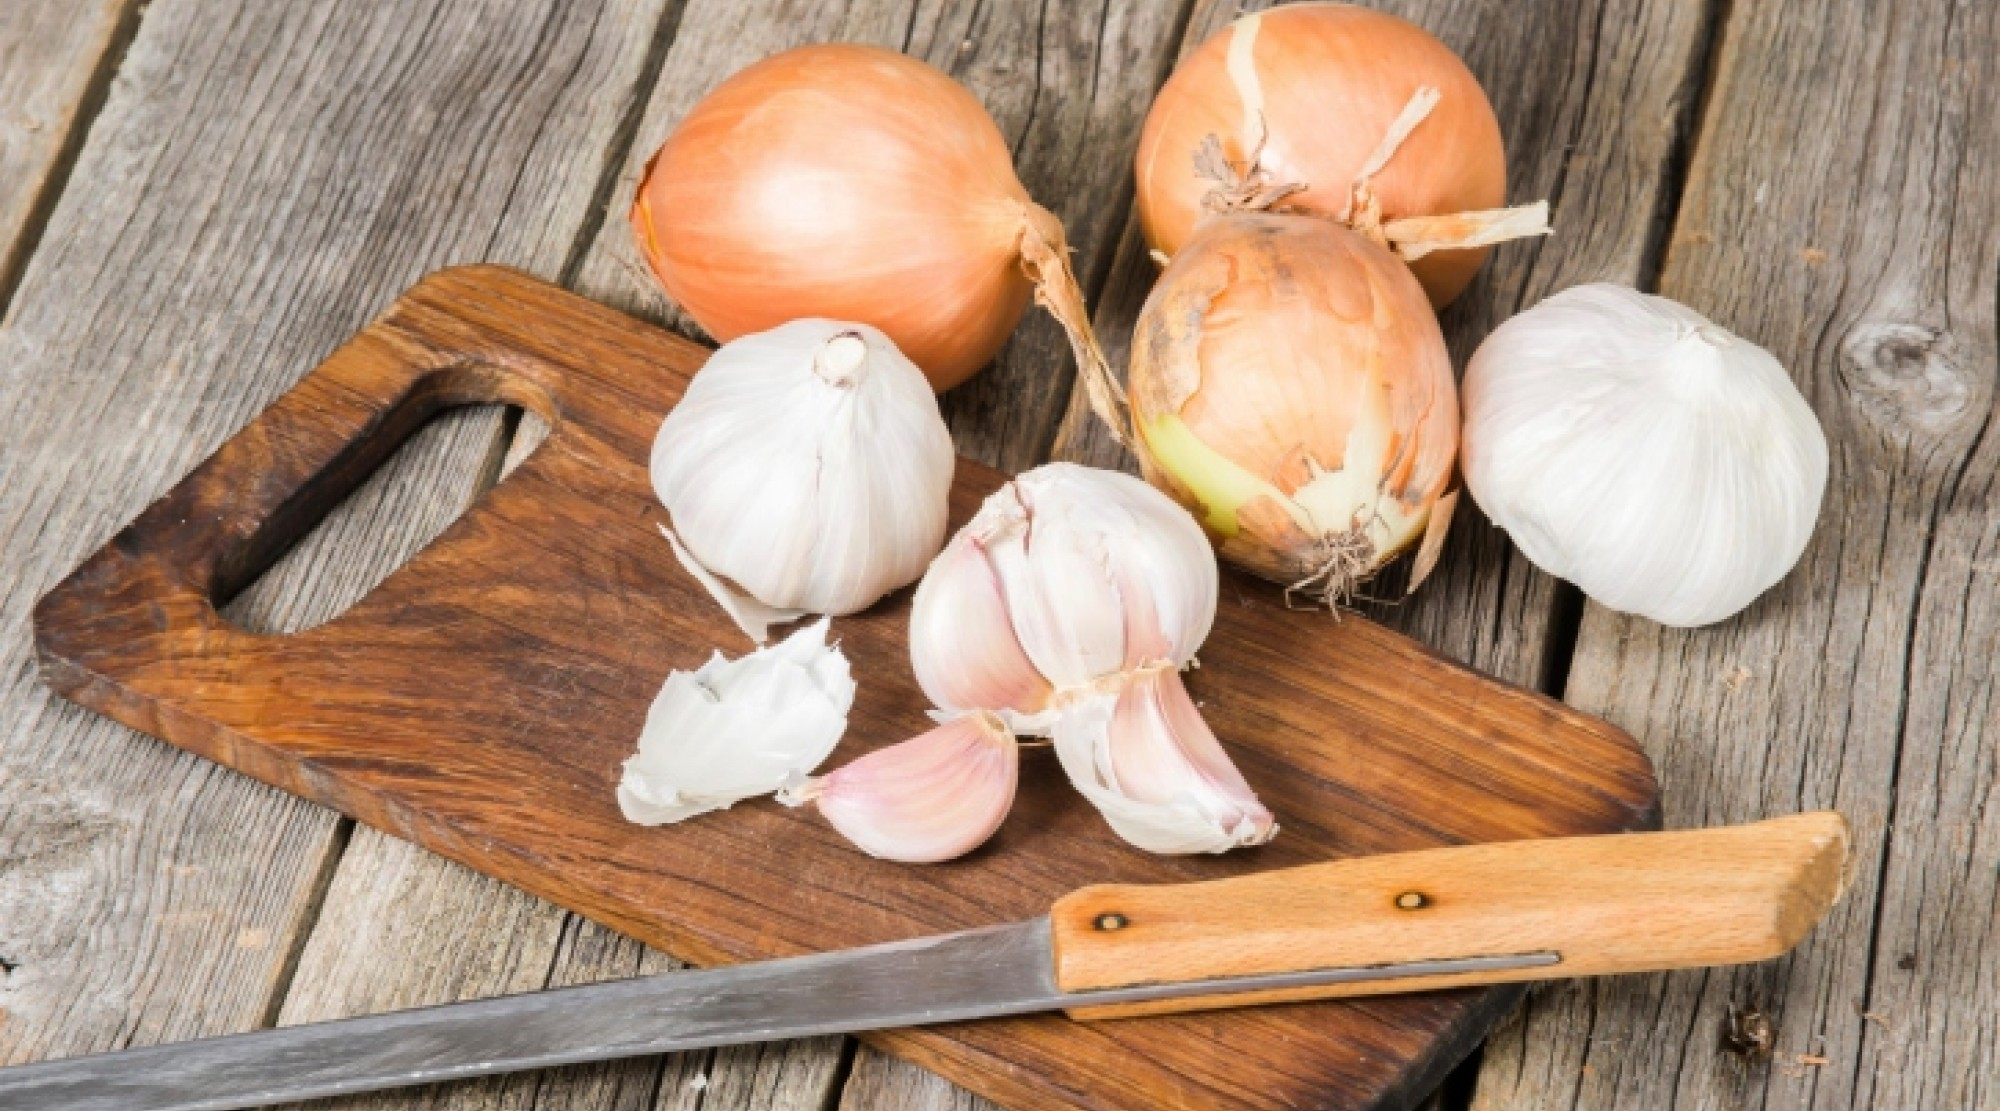 No Onion And No Garlic Diet: Does Ayurveda Really Suggest This?